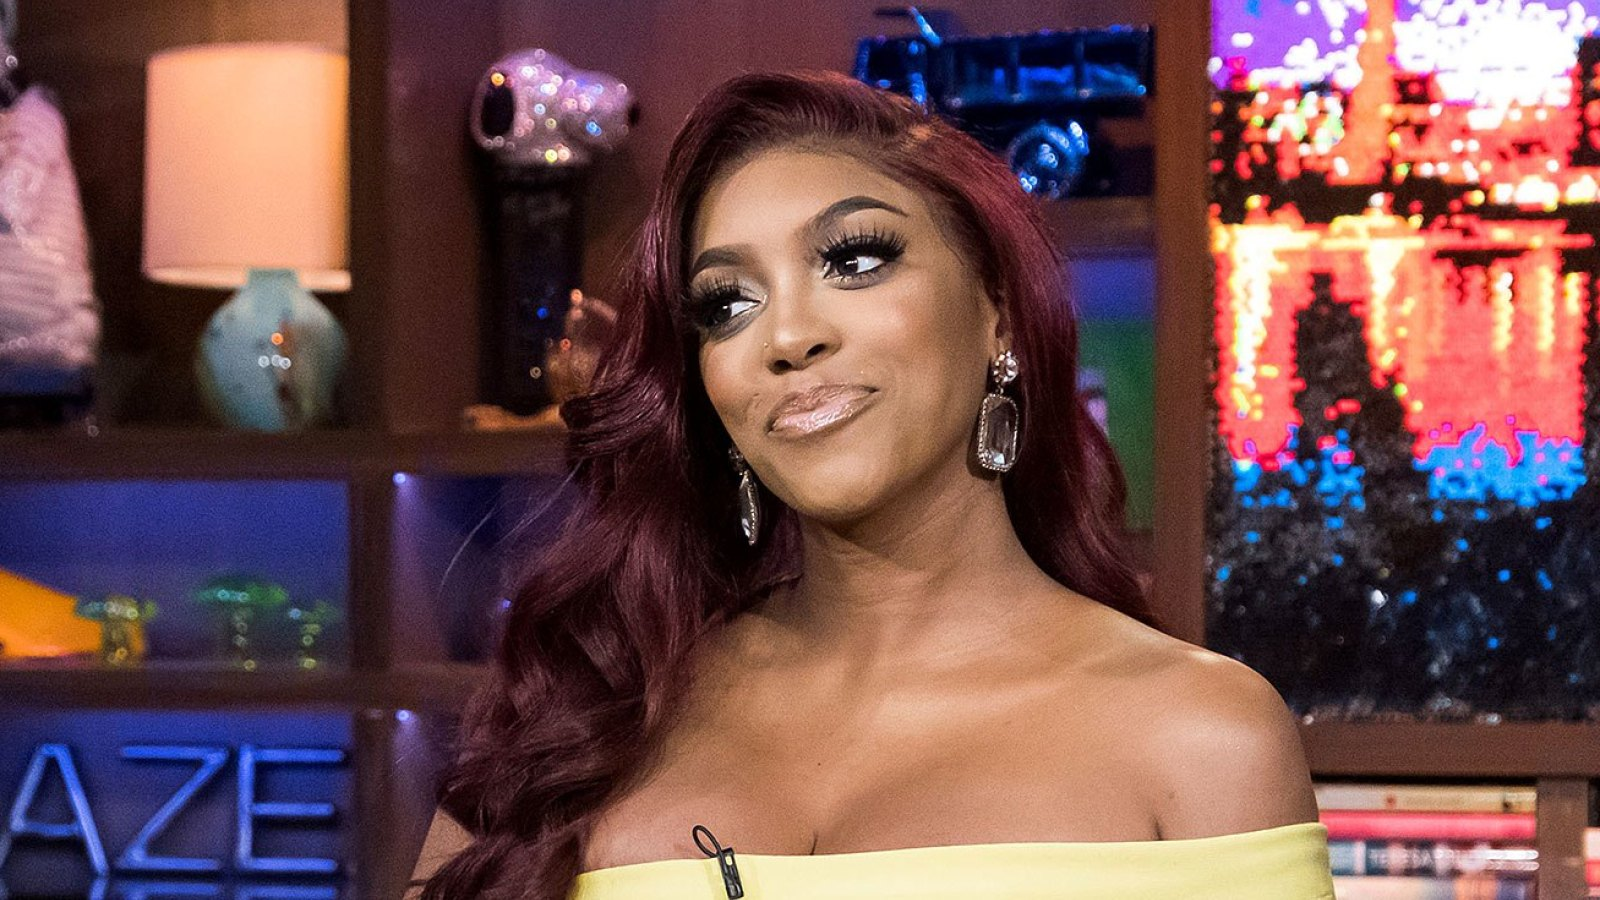 Porsha Williams' Latest Photo With Pilar Jhena Has Fans Saying That She's The Spitting Image Of Her Dad, Dennis McKinley